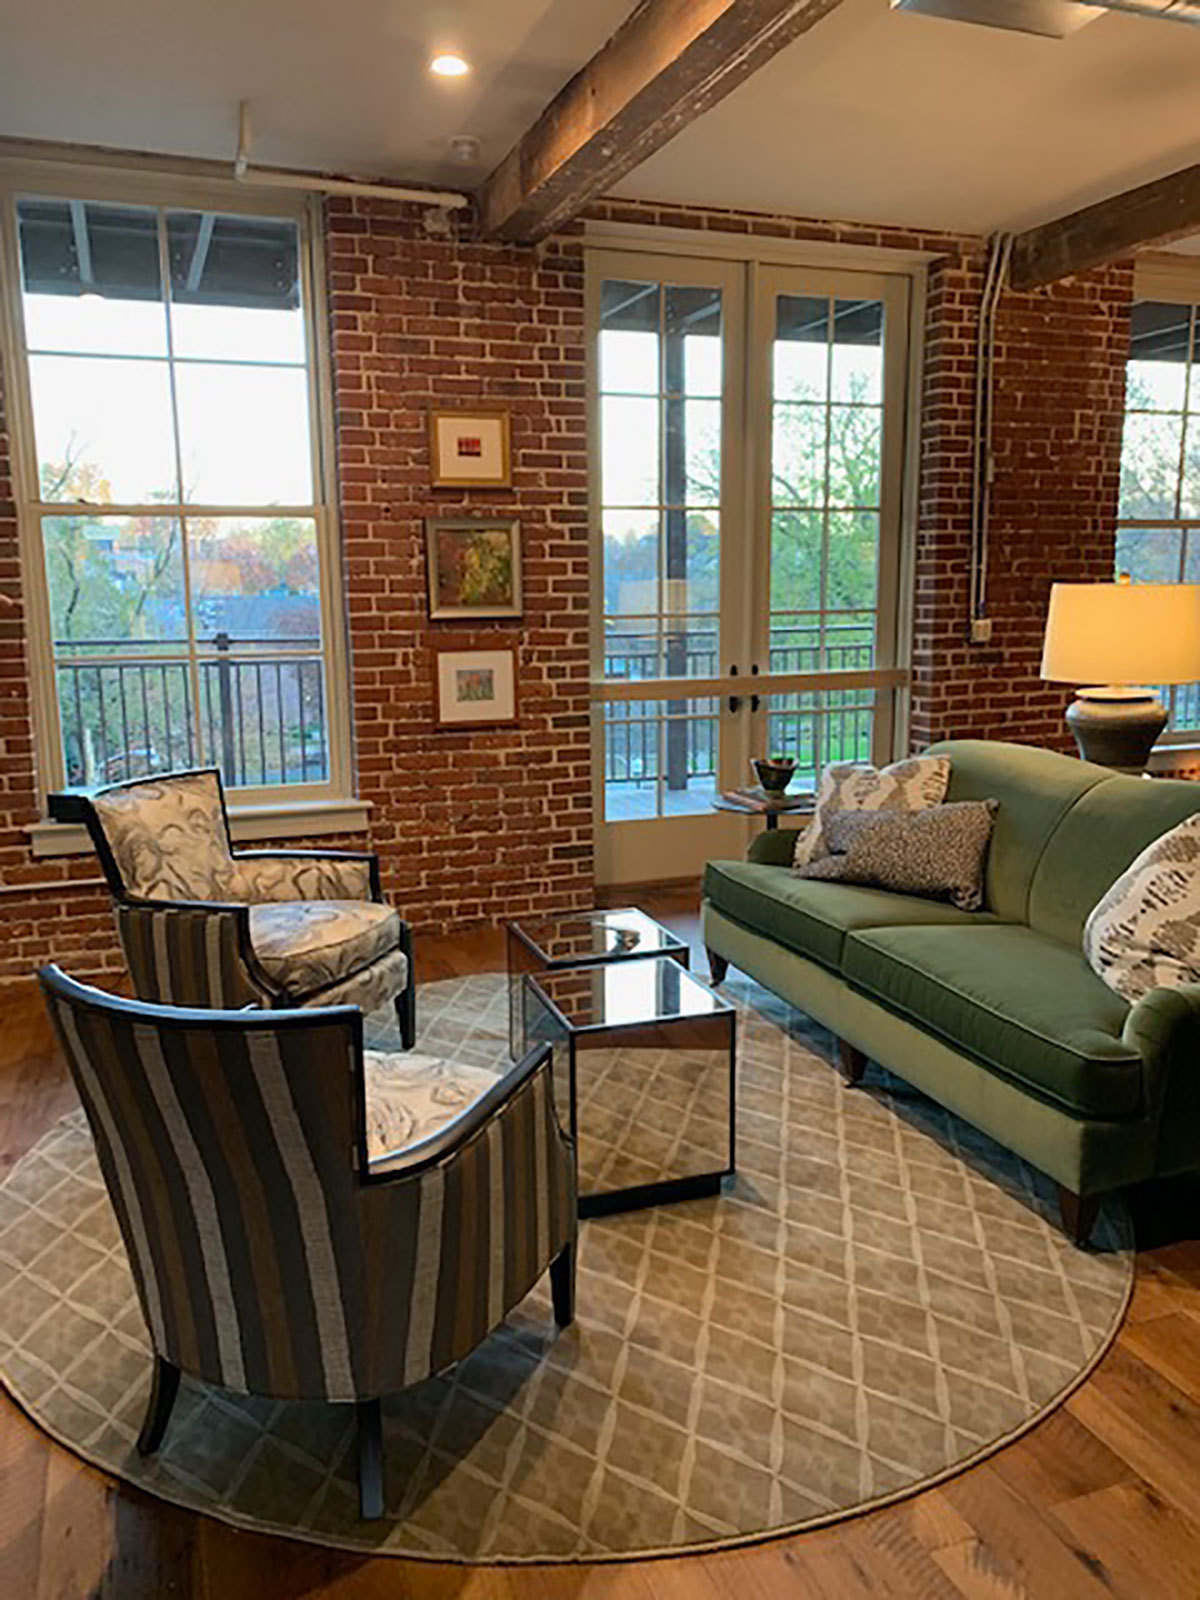 classic seating area in historic brick building